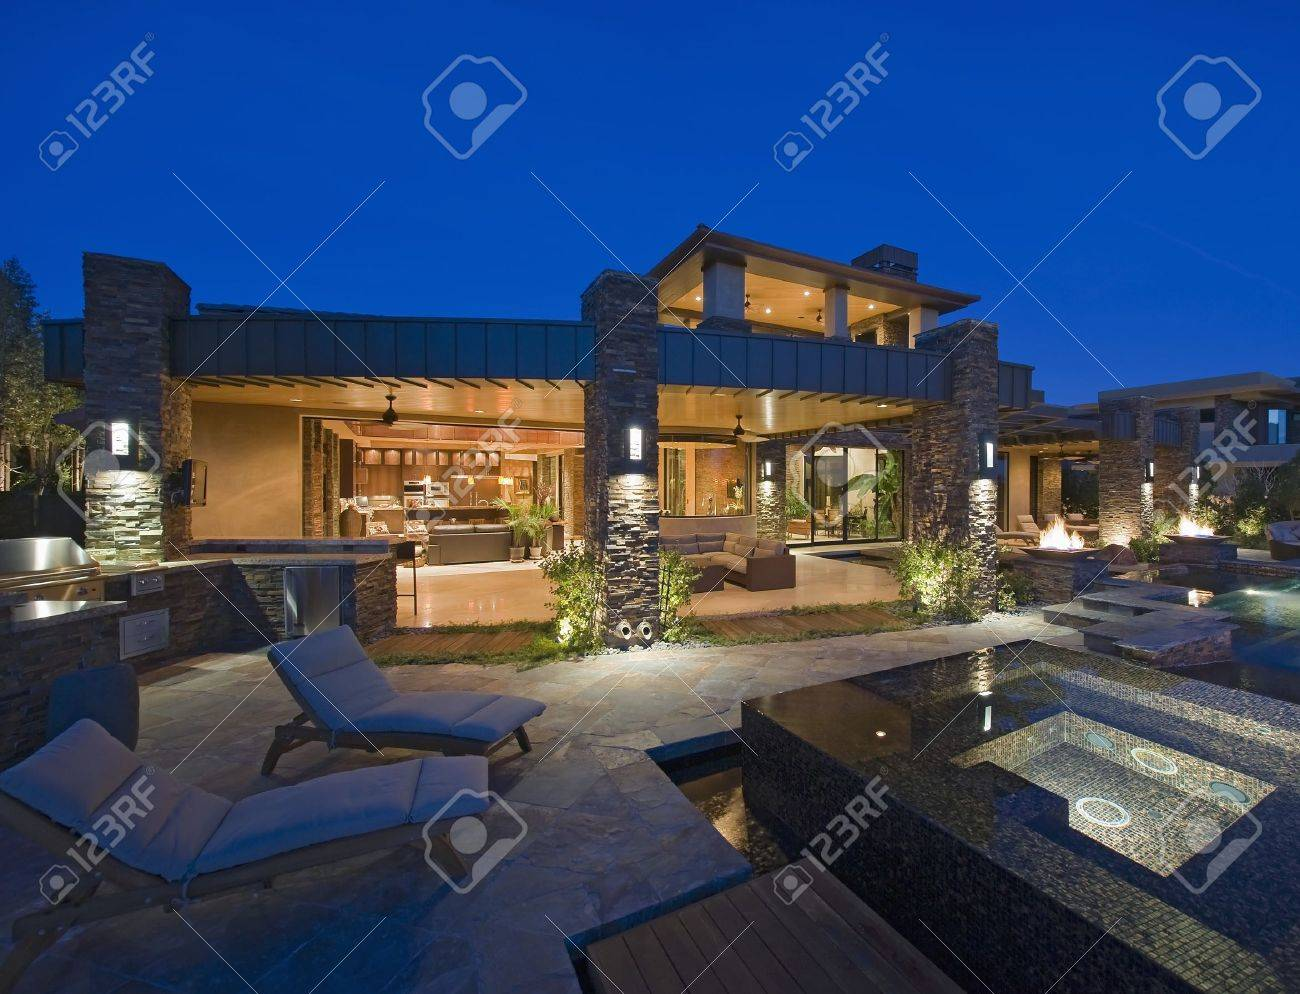 House Exterior Lit Up At Night With Patio Furniture Stock Photo Picture And Royalty Free Image Image 20741887